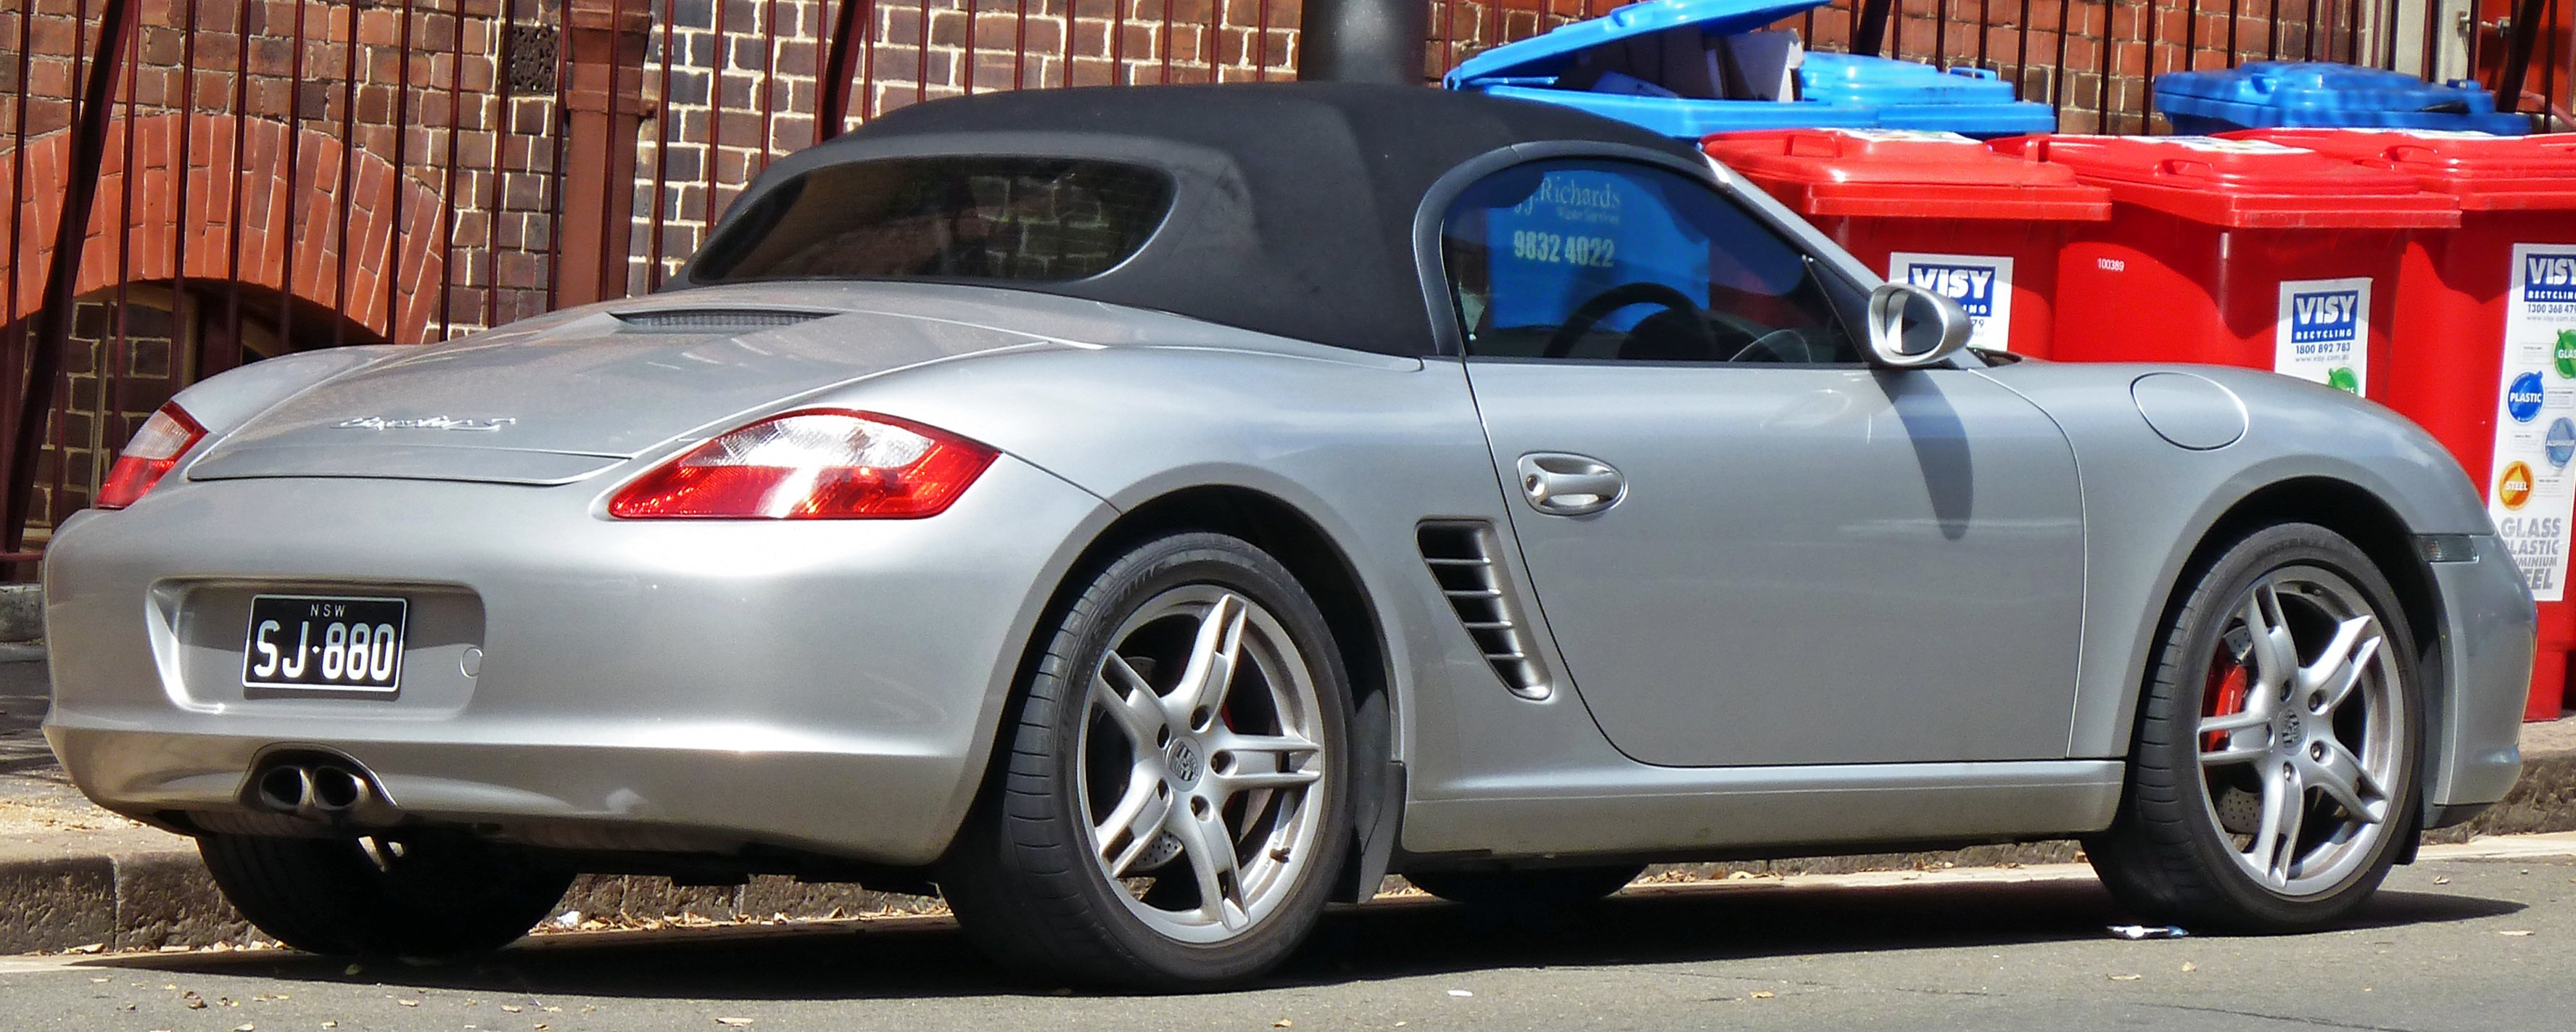 2011 Porsche Boxster 986987  pictures information and specs